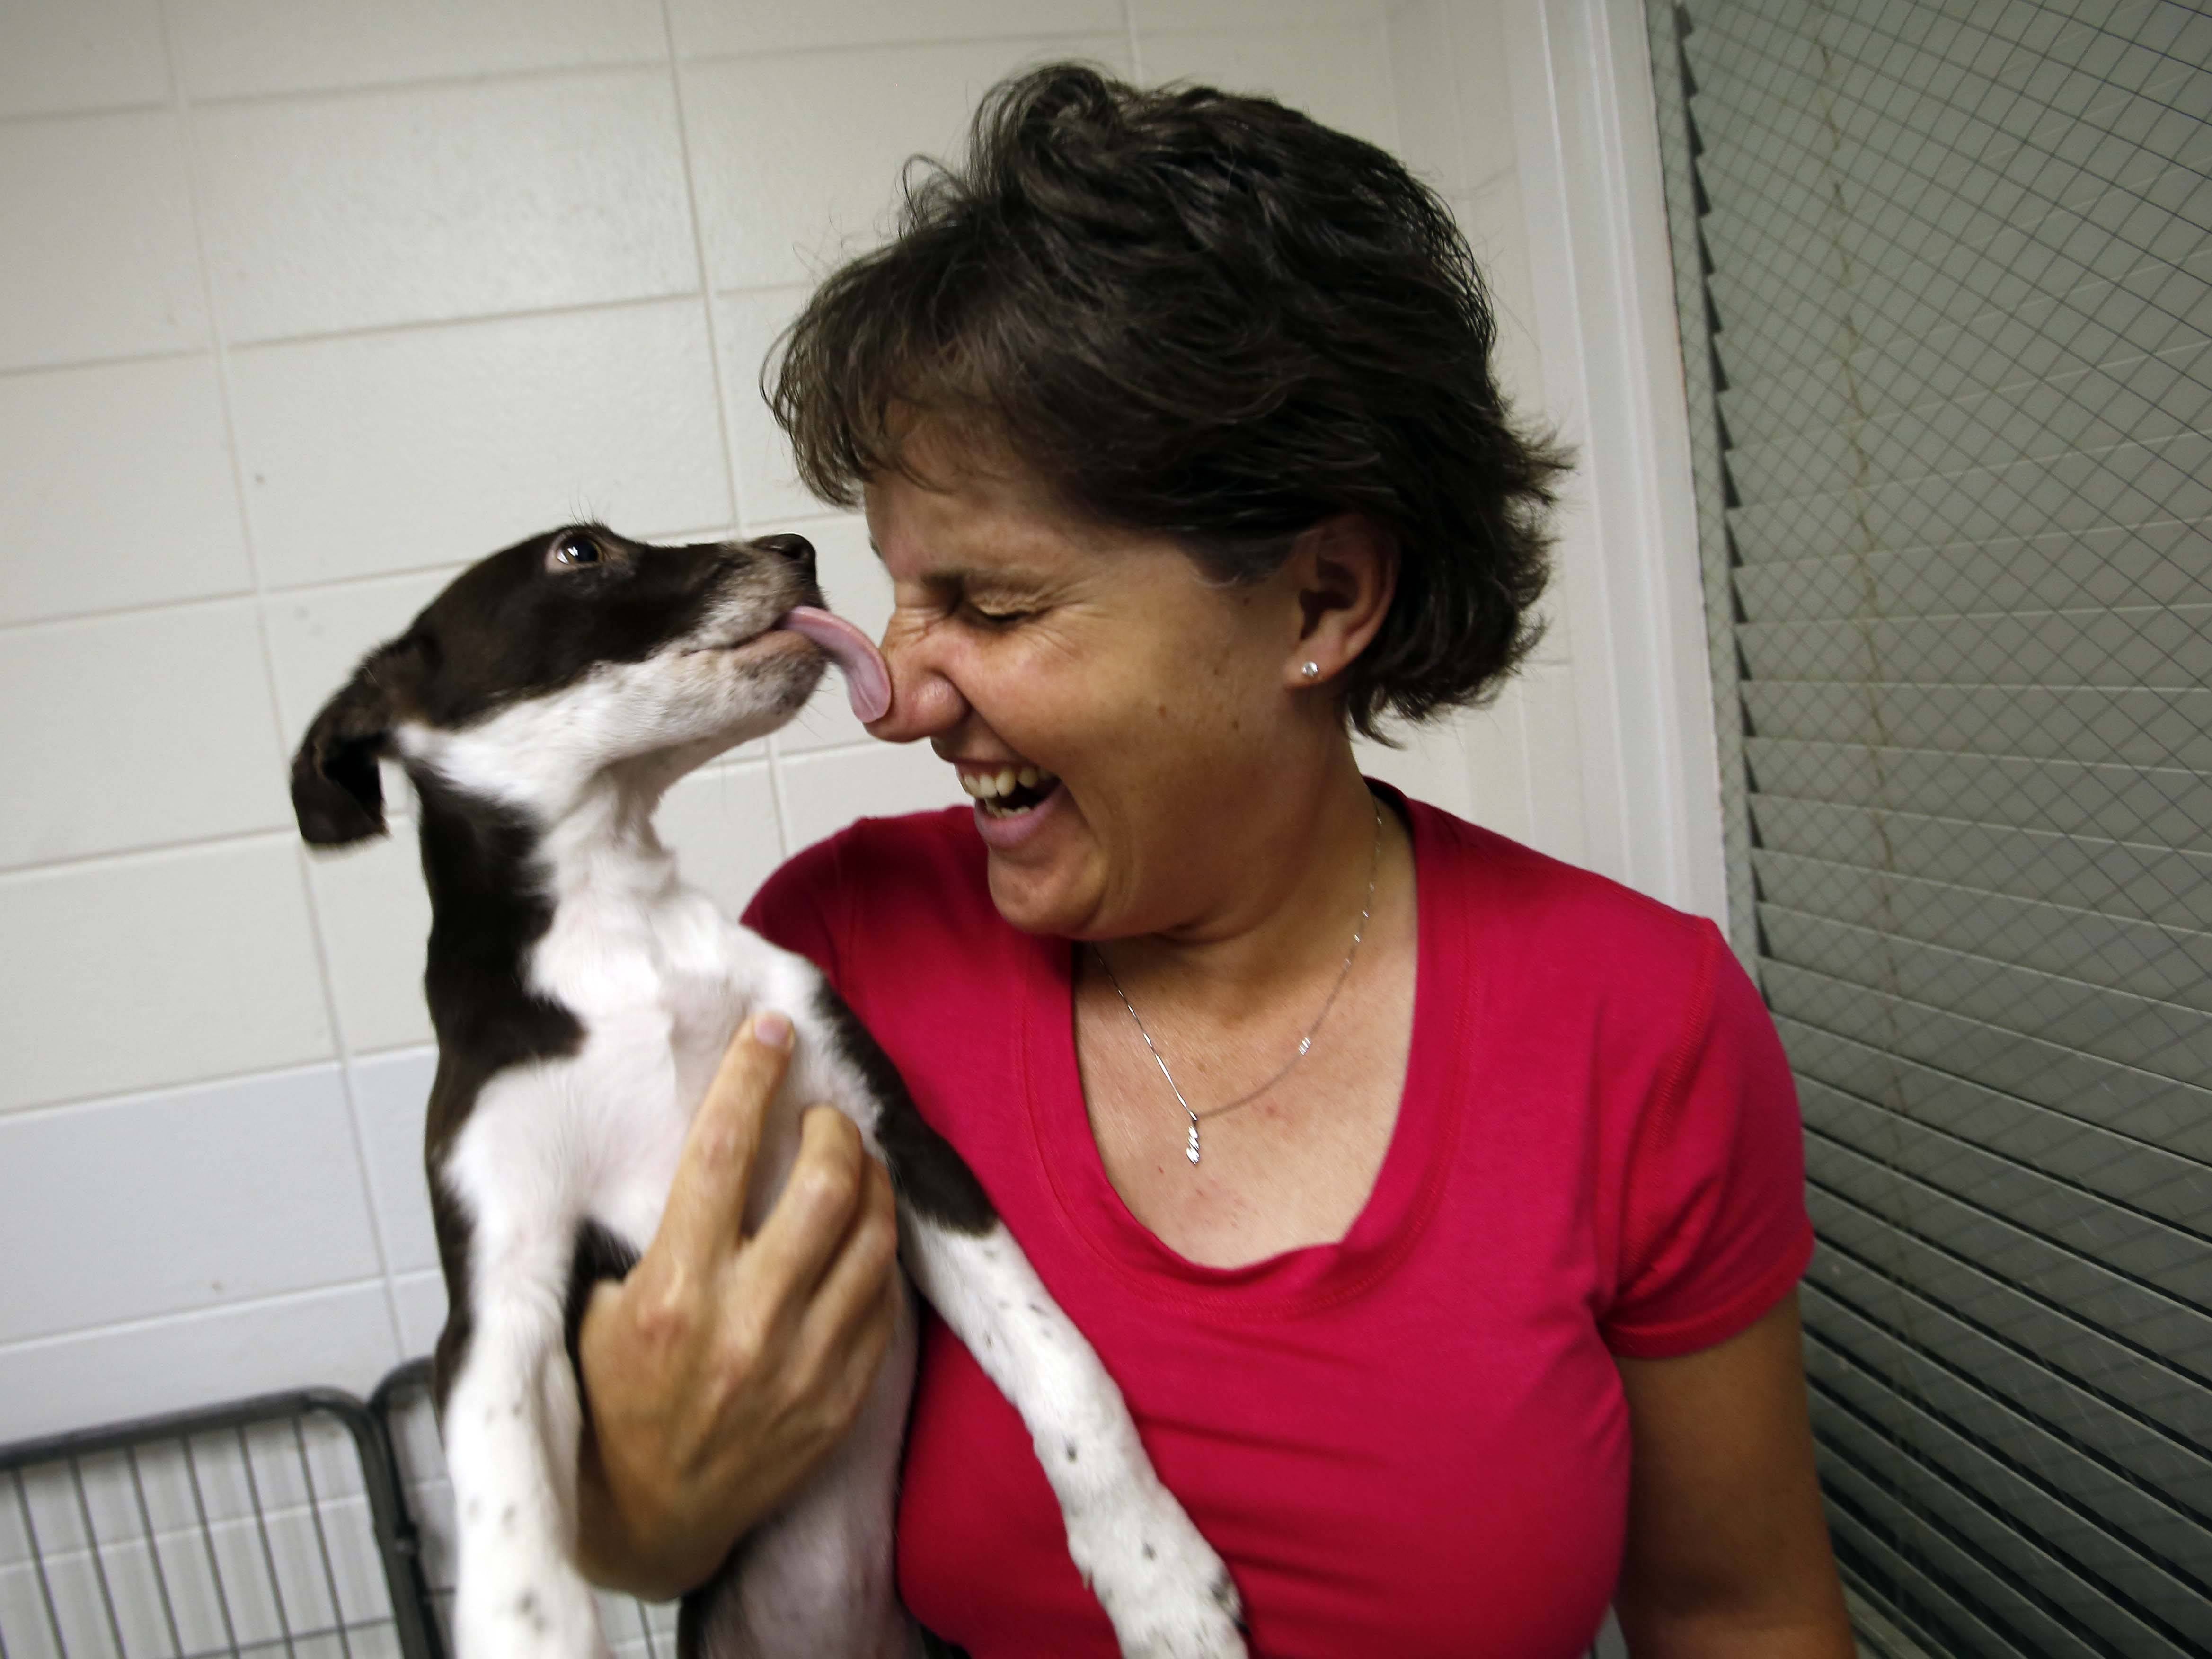 Anderson Animal Shelter Executive Director Beth Drake is welcomed by one of the puppies available for adoption at the South Elgin facility. Drake was hired in mid-May and already has spearheaded a number of changes, including a $600,000 renovation that will start Sept. 1.